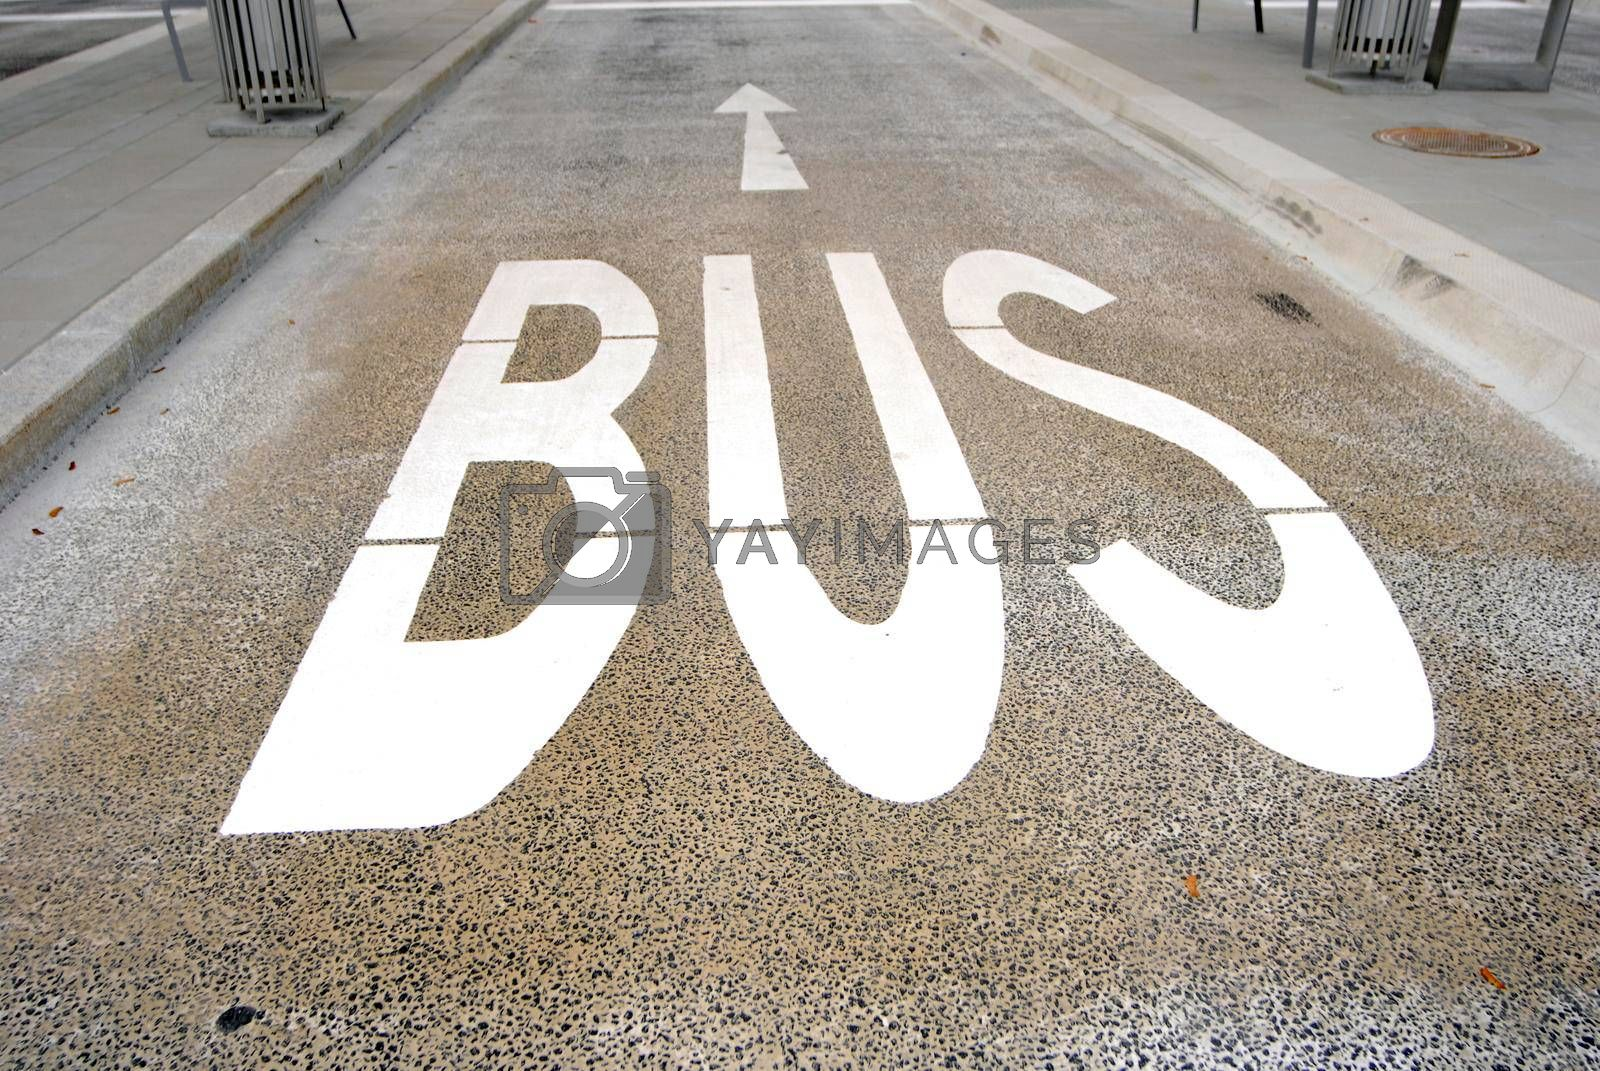 a bus lane marking on the street, public transport and road traffic